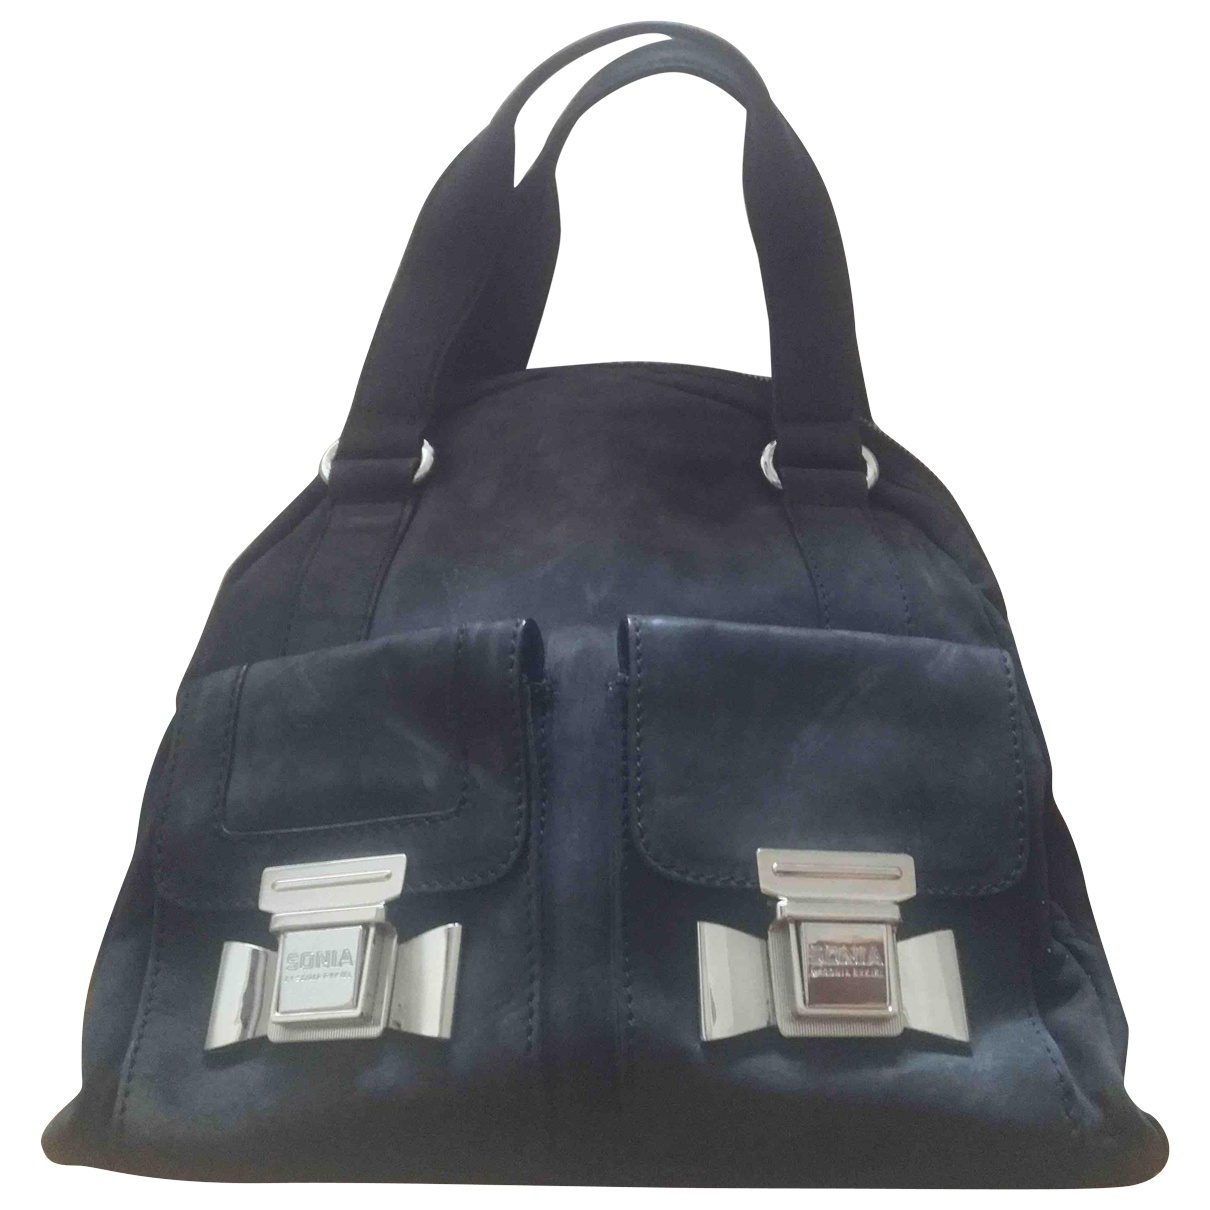 Sonia By Sonia Rykiel - Sac a main   pour femme en suede - anthracite